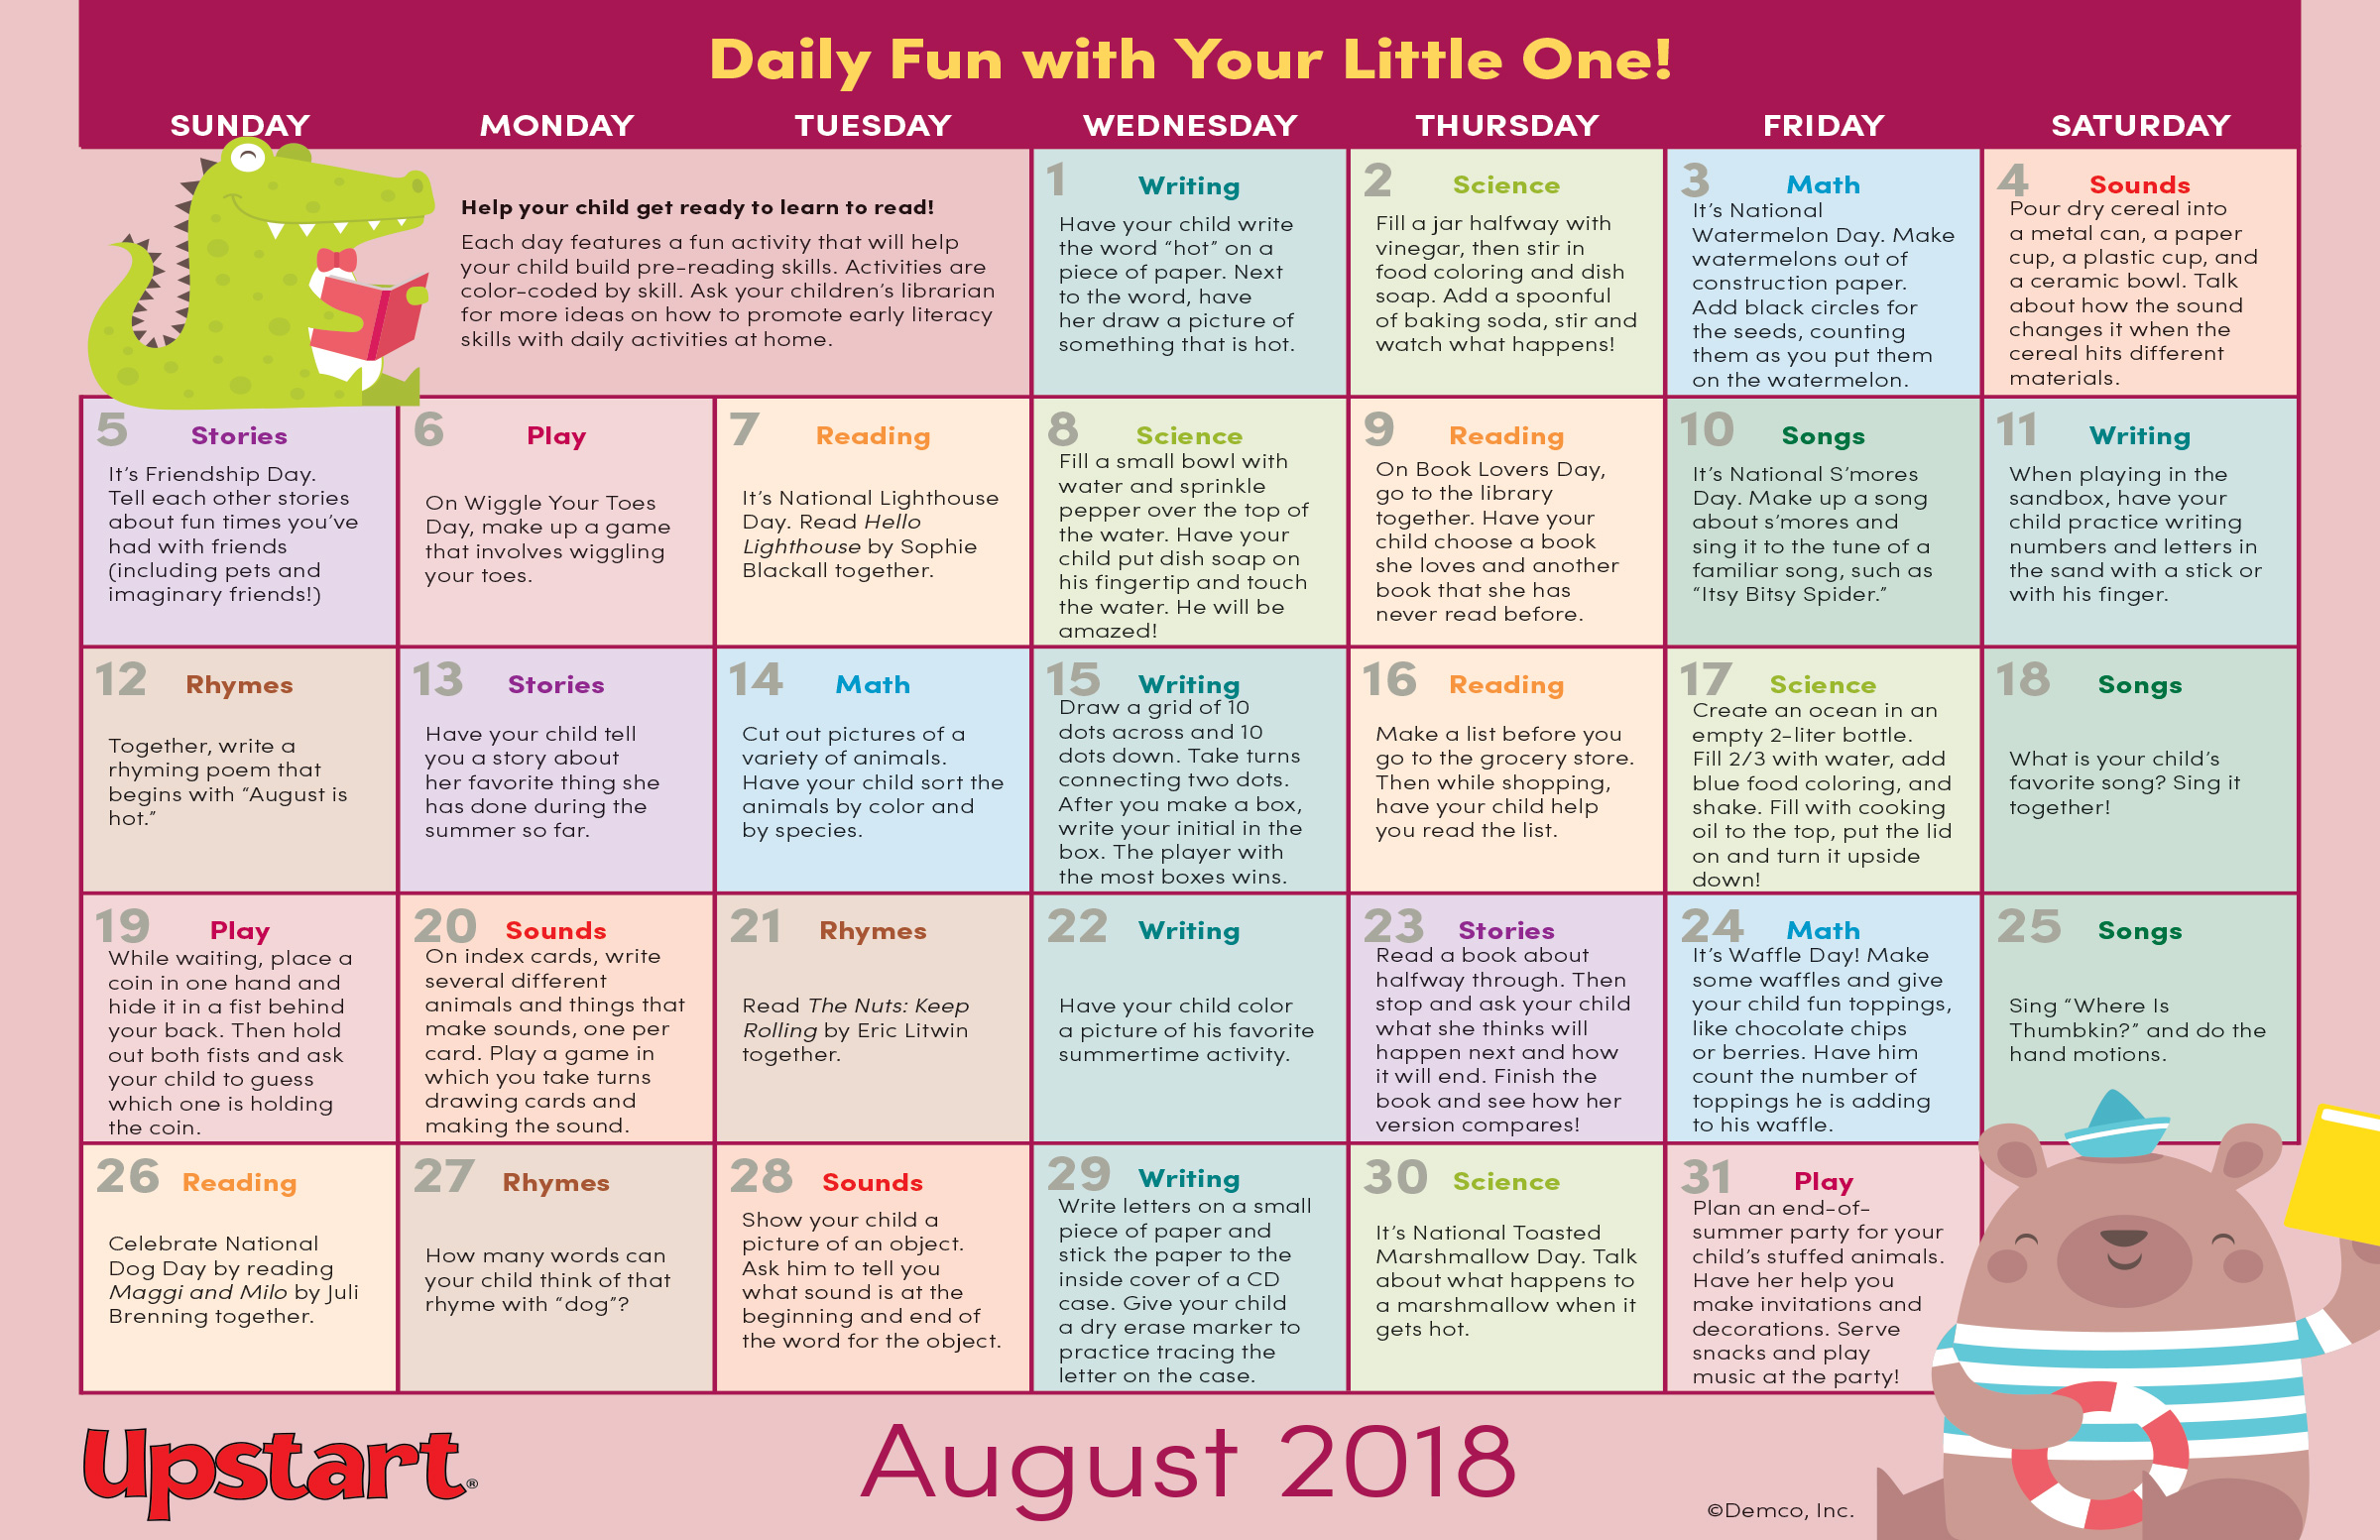 Early Literacy Activities Calendar: August 2018